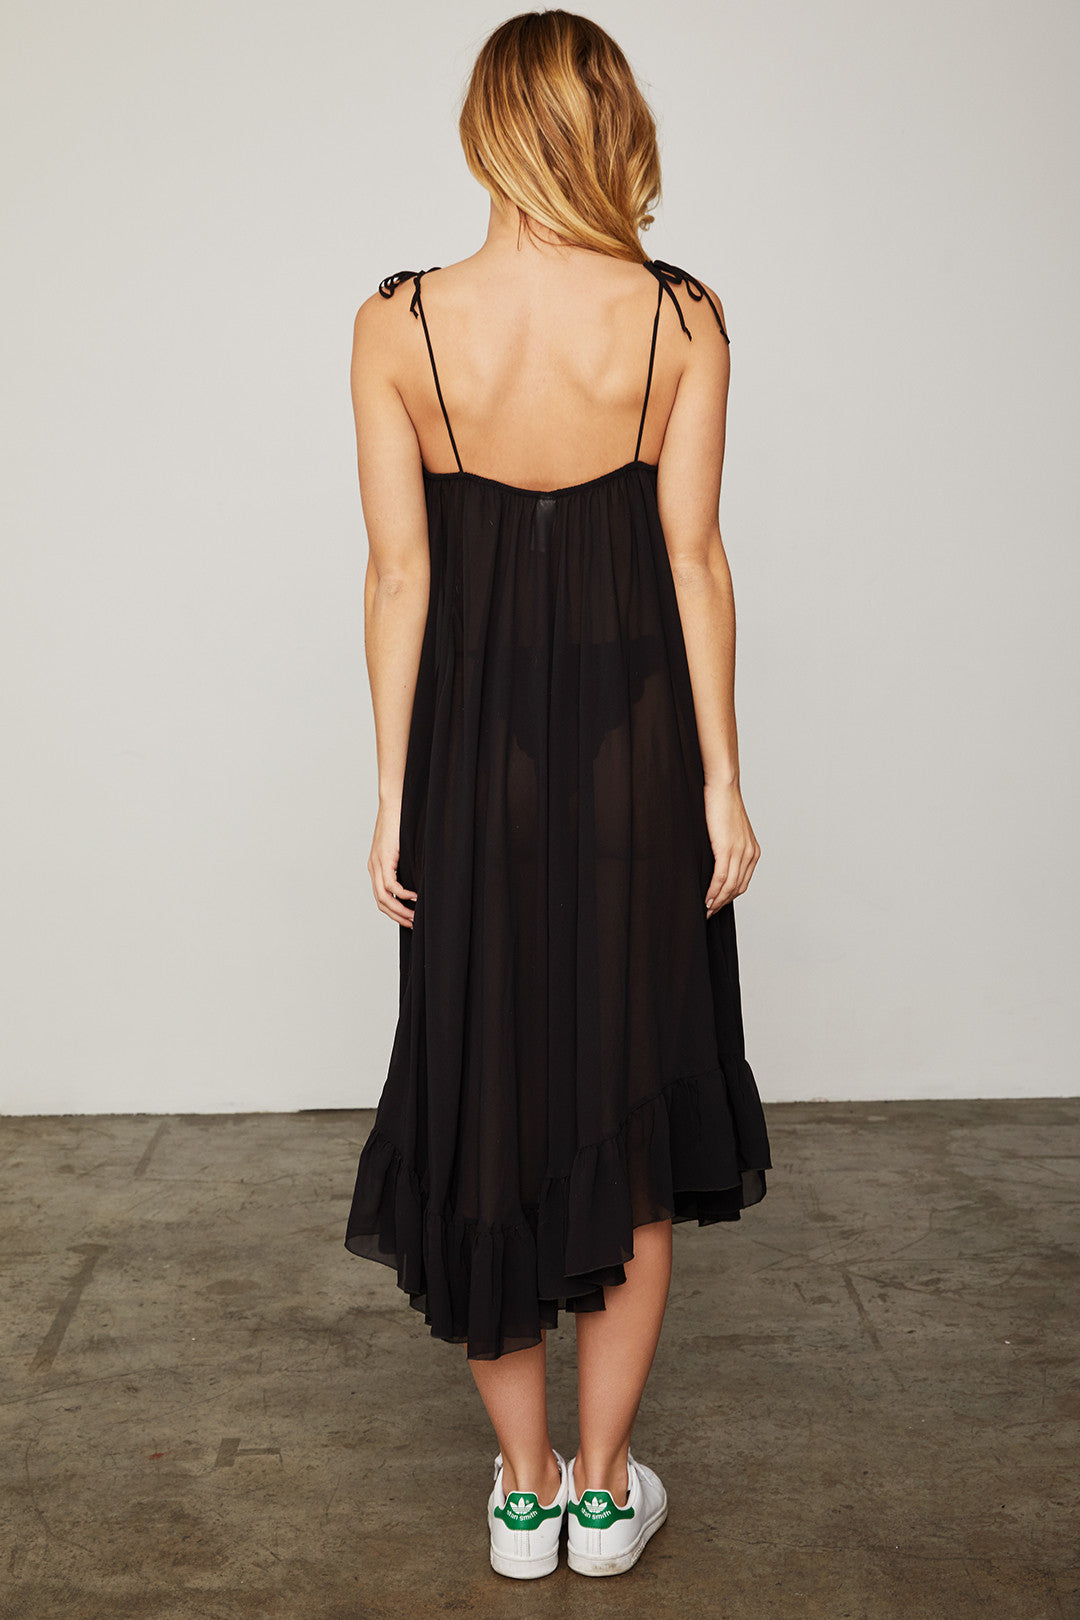 black spaghetti strap midi dress with ruffles made of chiffon machine washable